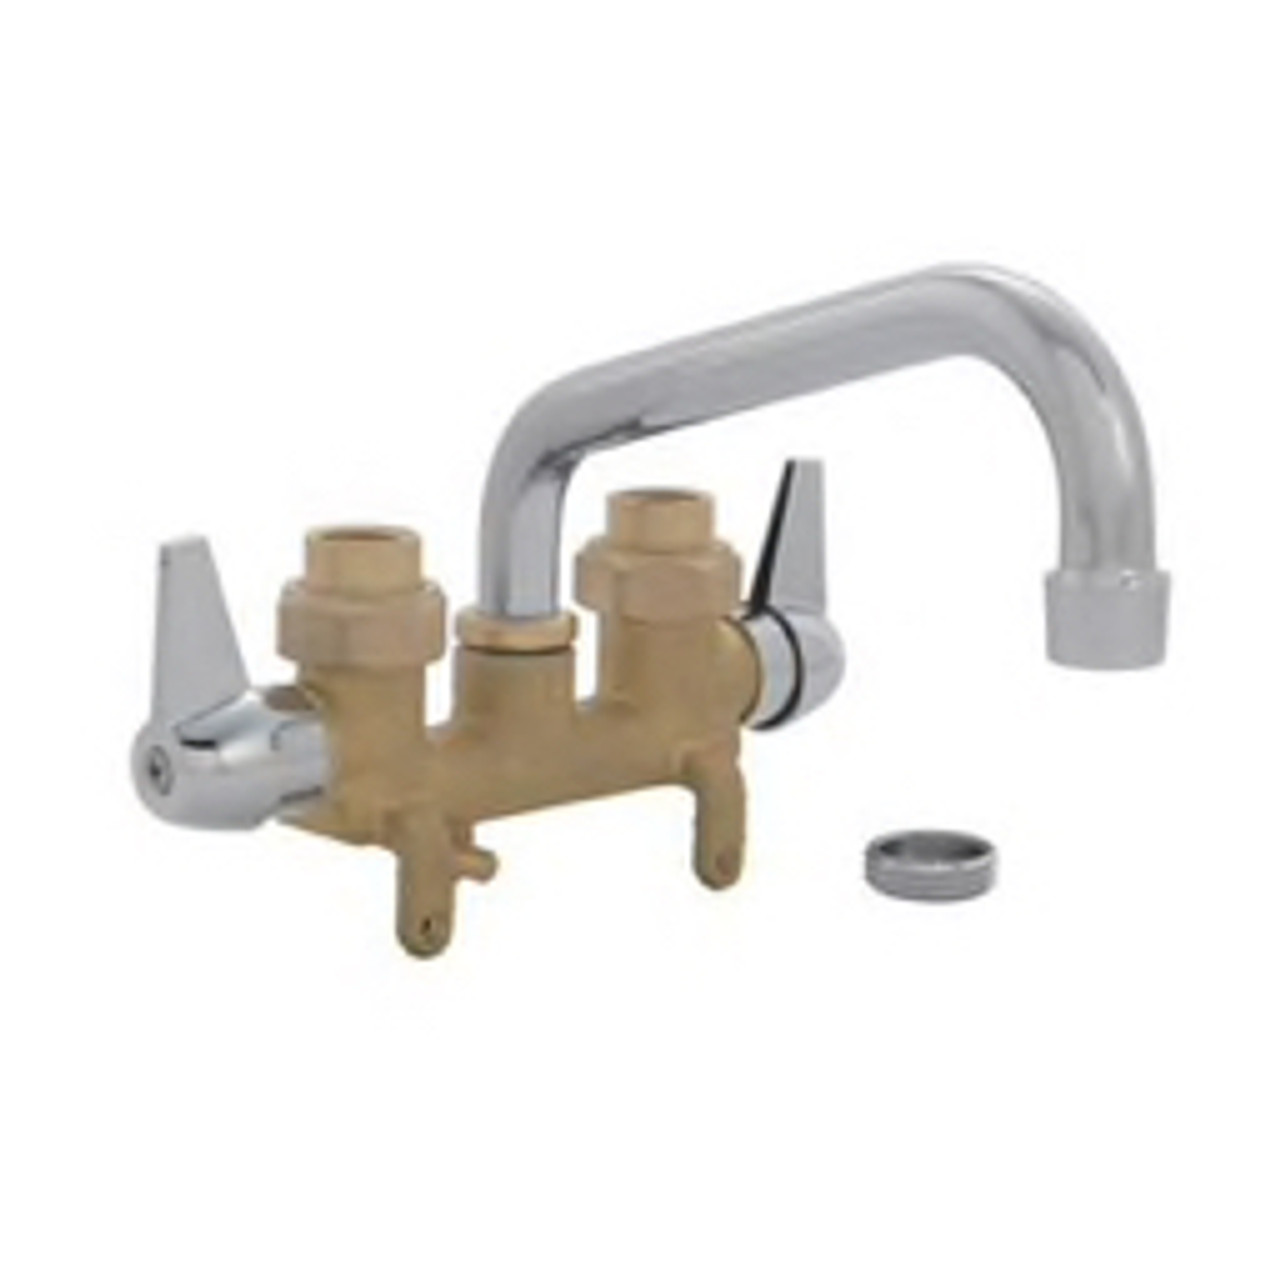 proflo utility sink faucet 2 4 gpm laundry utility sink faucet with vertical brass supply lines and chrome spout handles